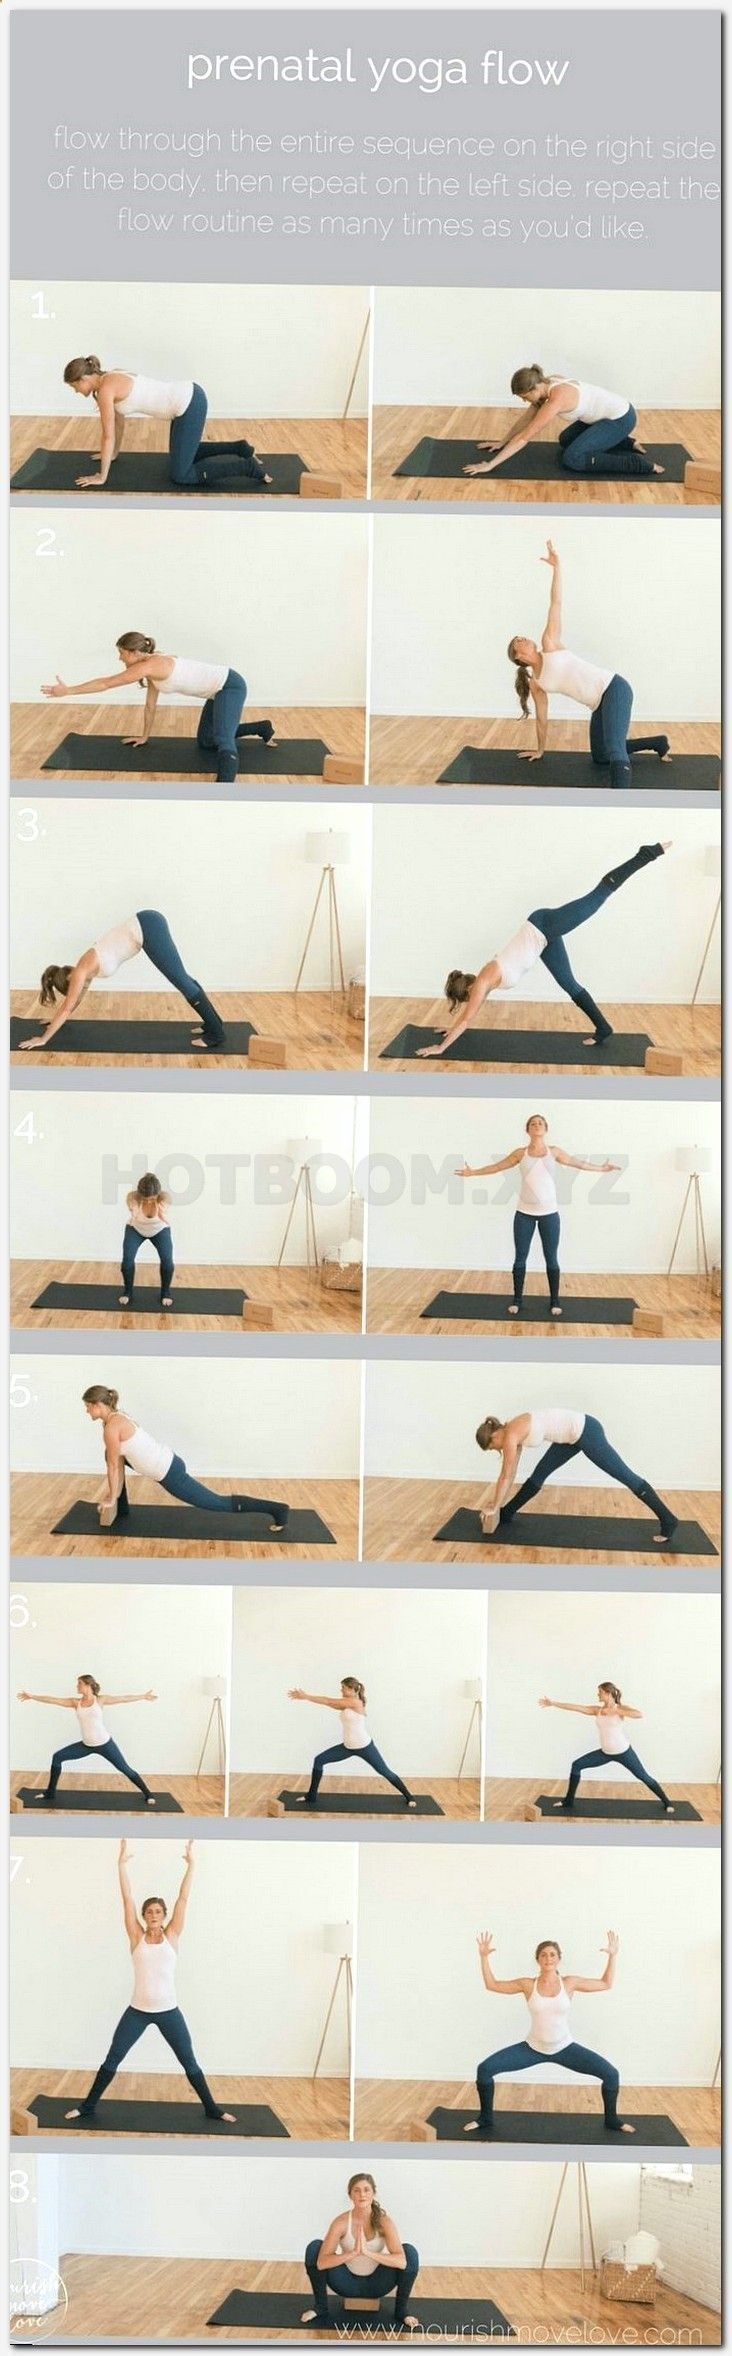 Strict Diet To Lose Weight Yoga Class Download Zen Loss Procedures By Exercise Ramdev Baba Medicine For In